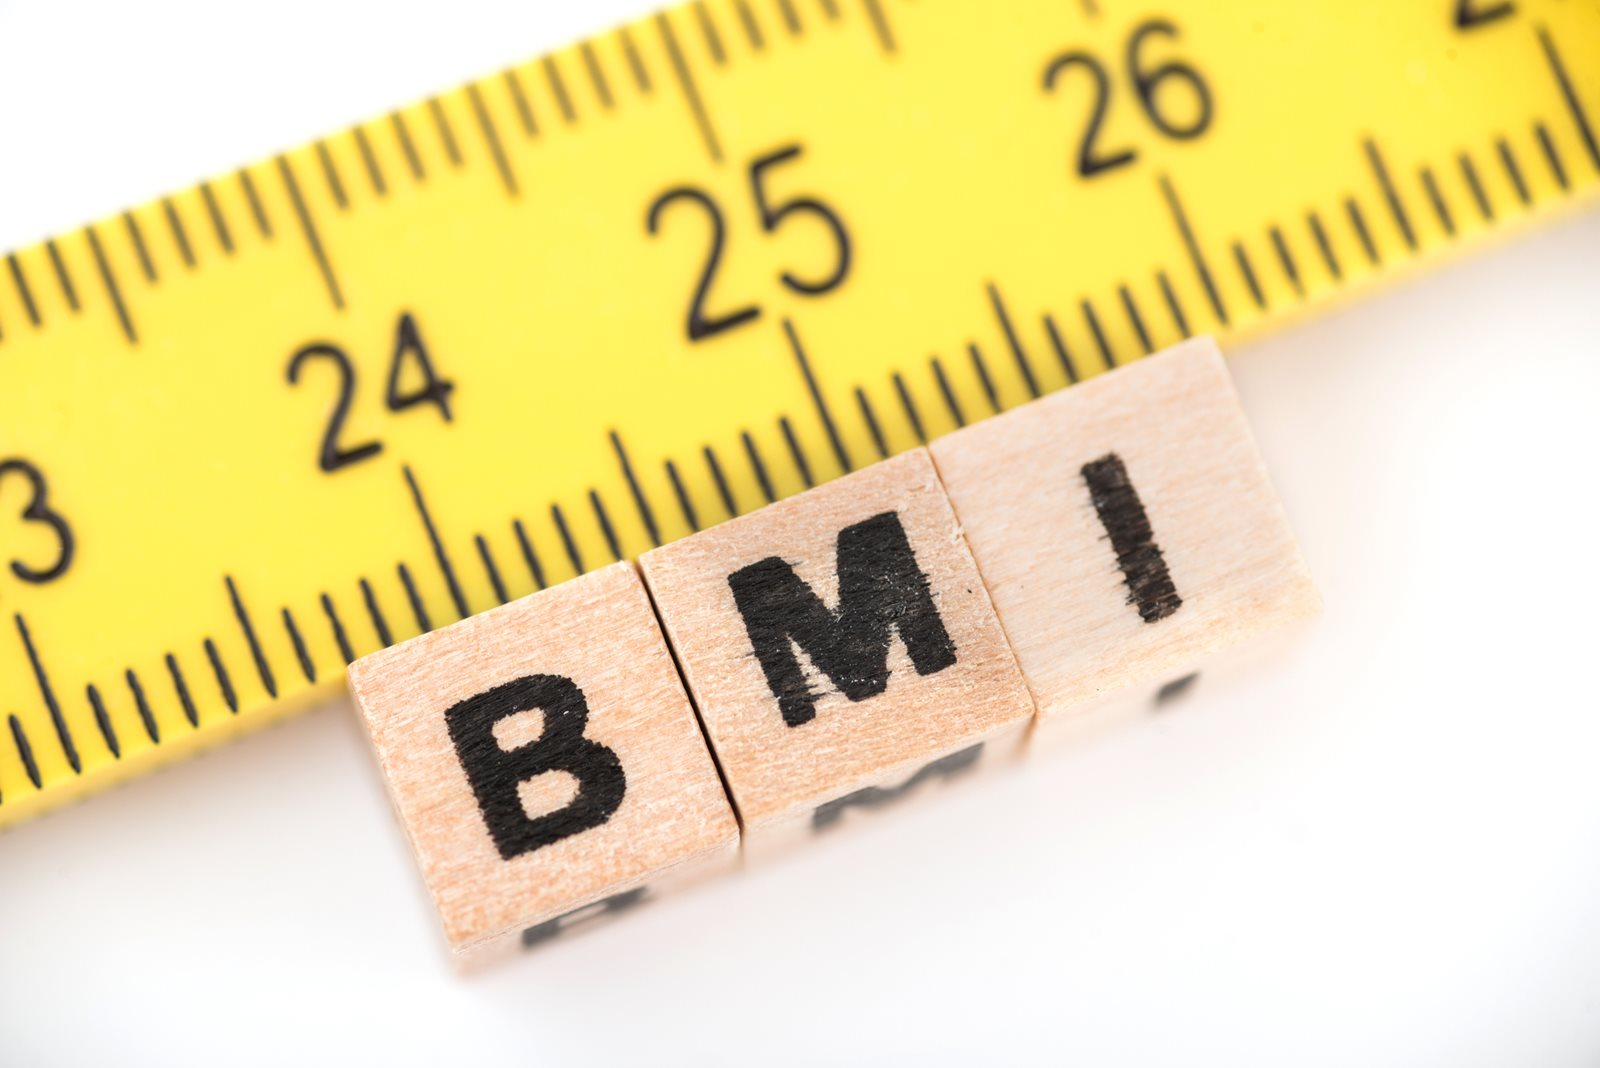 What's your BMI?